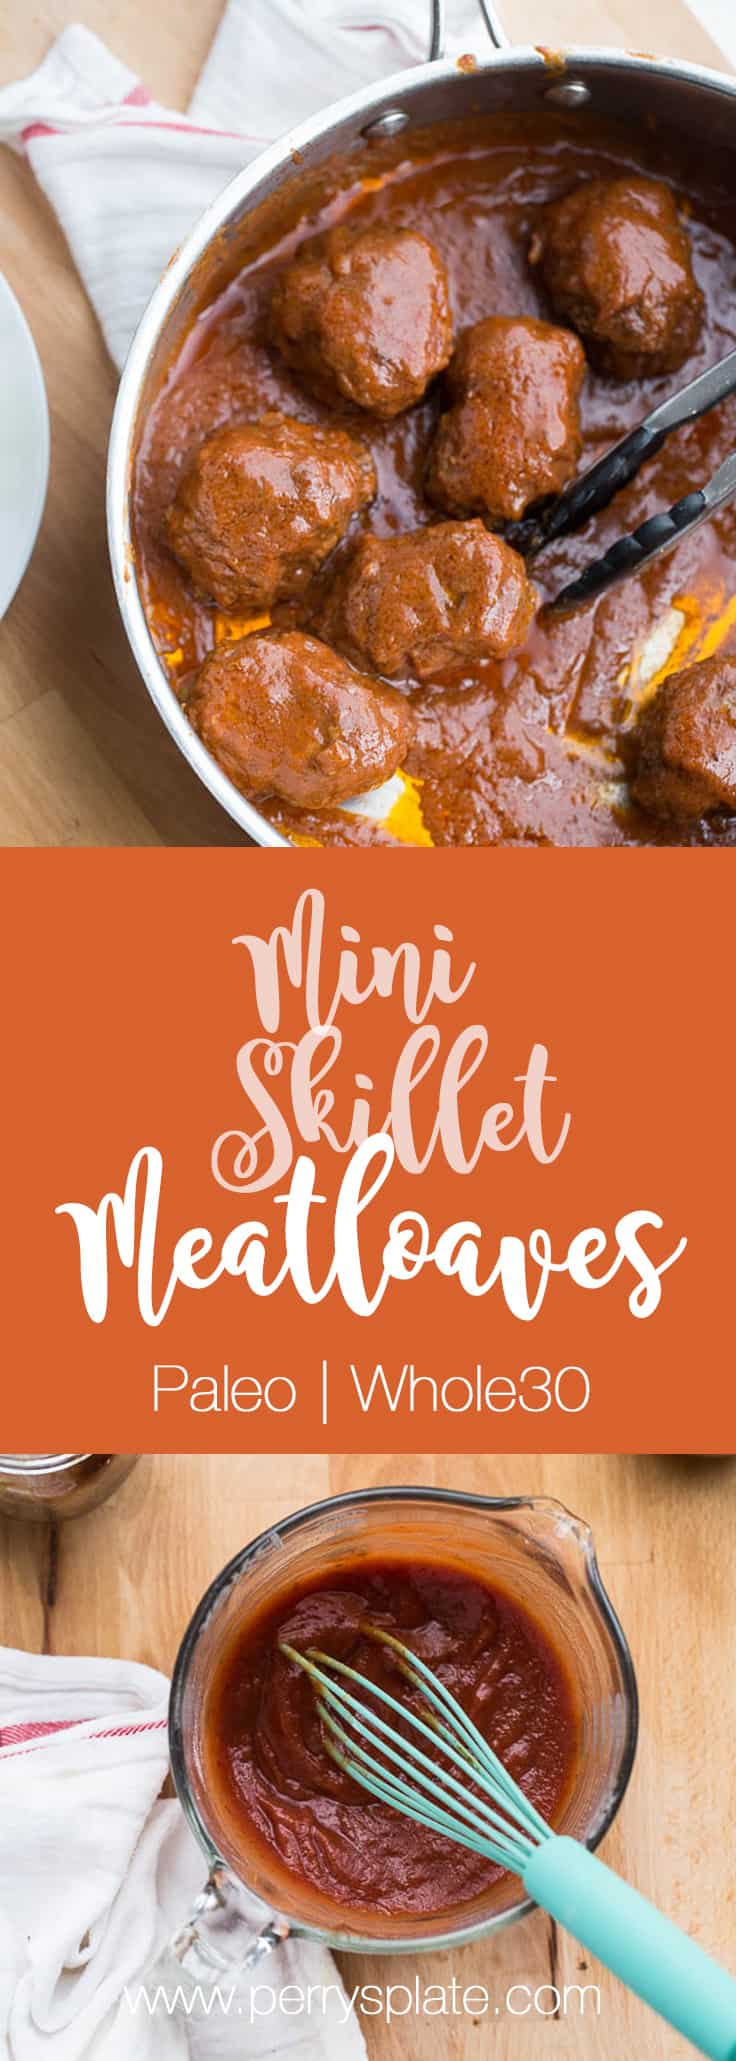 Mini Skillet Meatloaves | Whole30 meatloaf | paleo meatloaf | weeknight dinner recipes | perrysplate.com